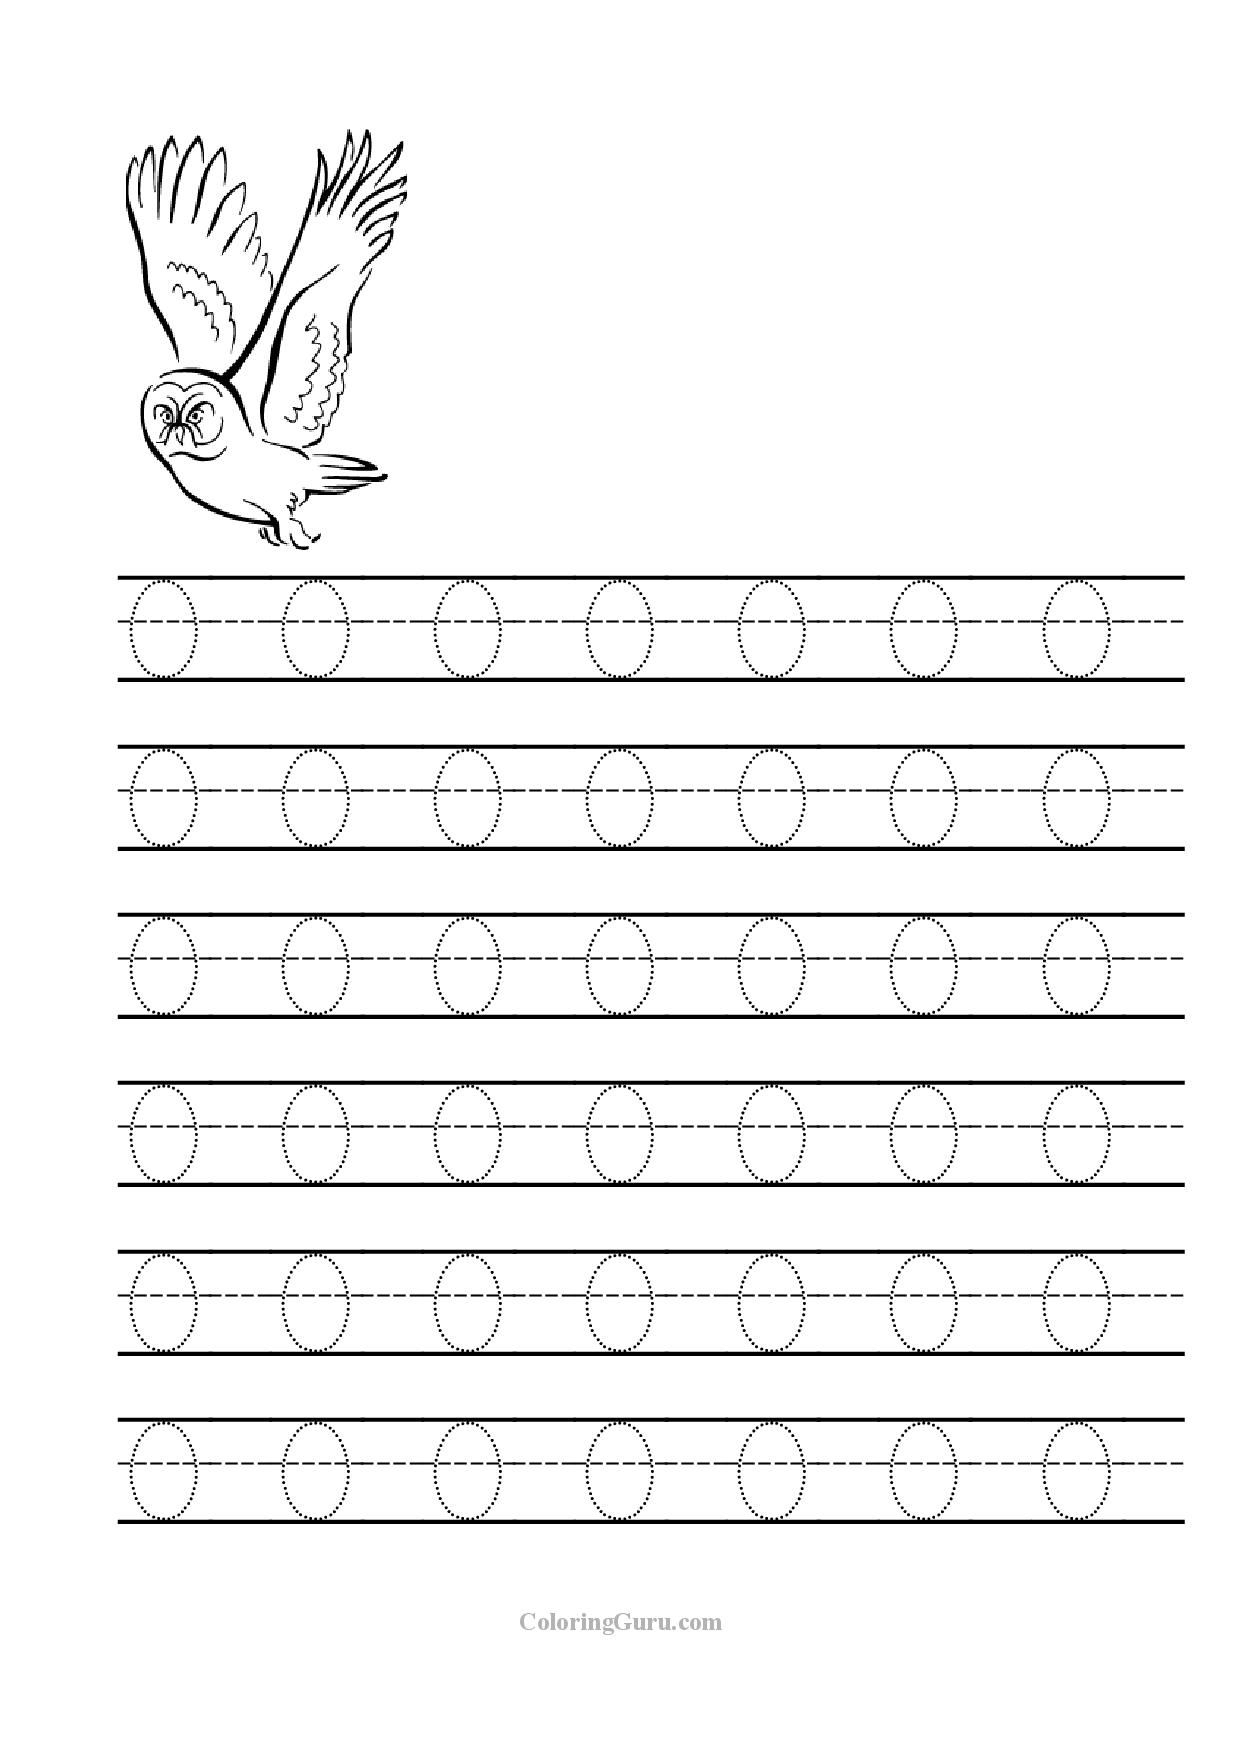 Free Printable Tracing Letter O Worksheets For Preschool inside Letter O Worksheets Free Printable